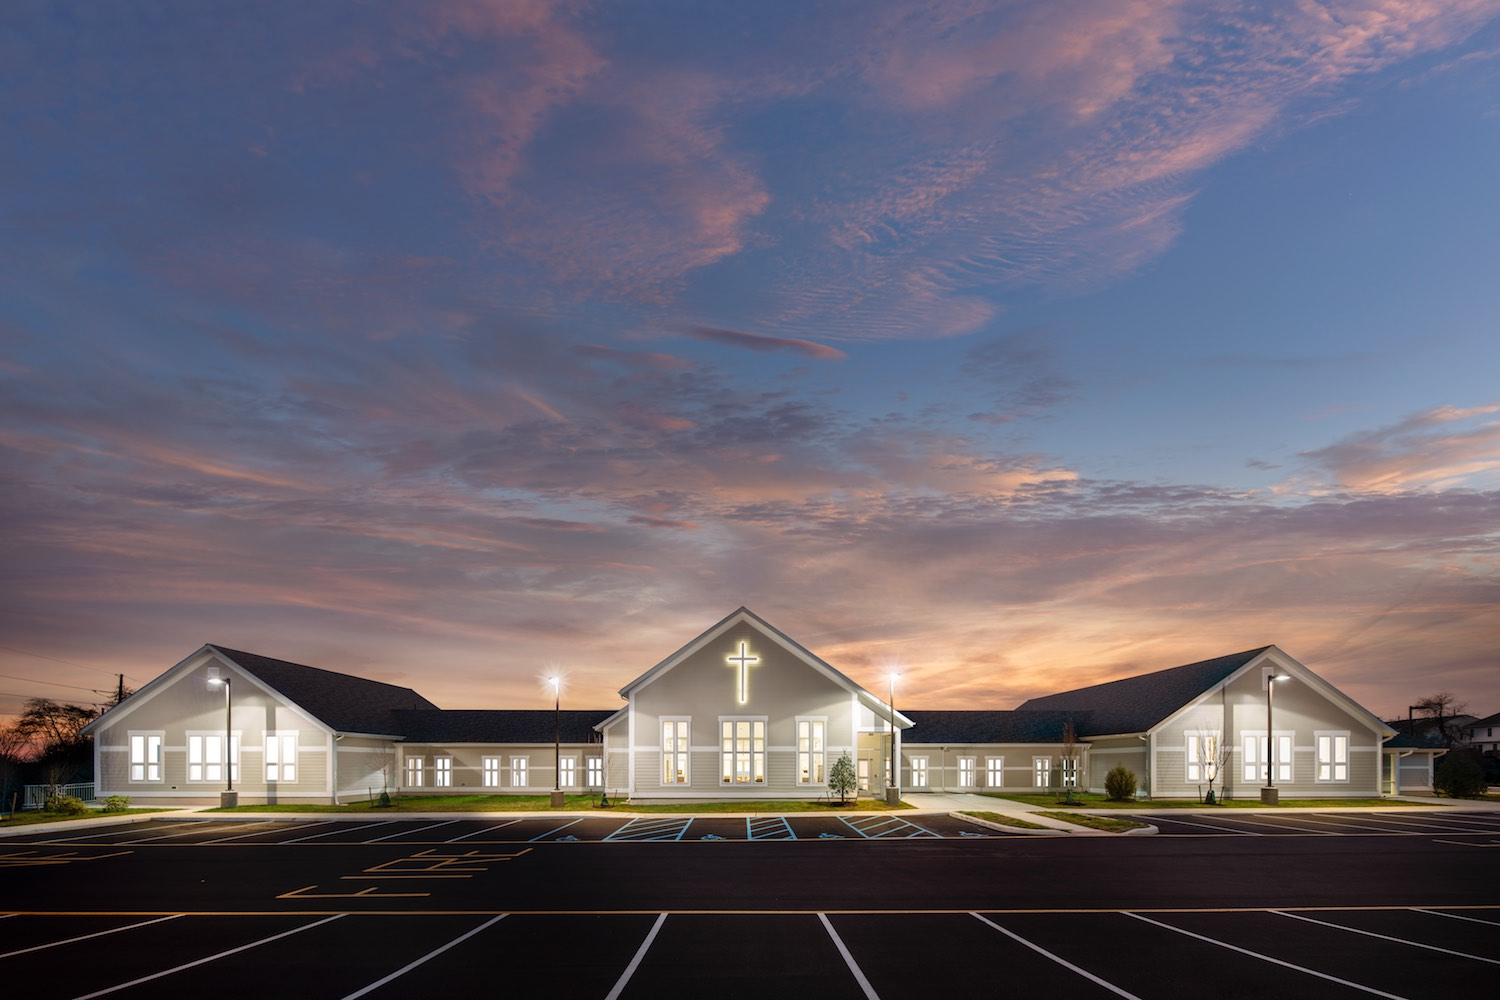 """Twilight images don't need direct sun and often show off the building brilliantly. This one was done as an elevation, probably very close to the way the design appeared on the """"blueprints"""" when the design was being worked up."""